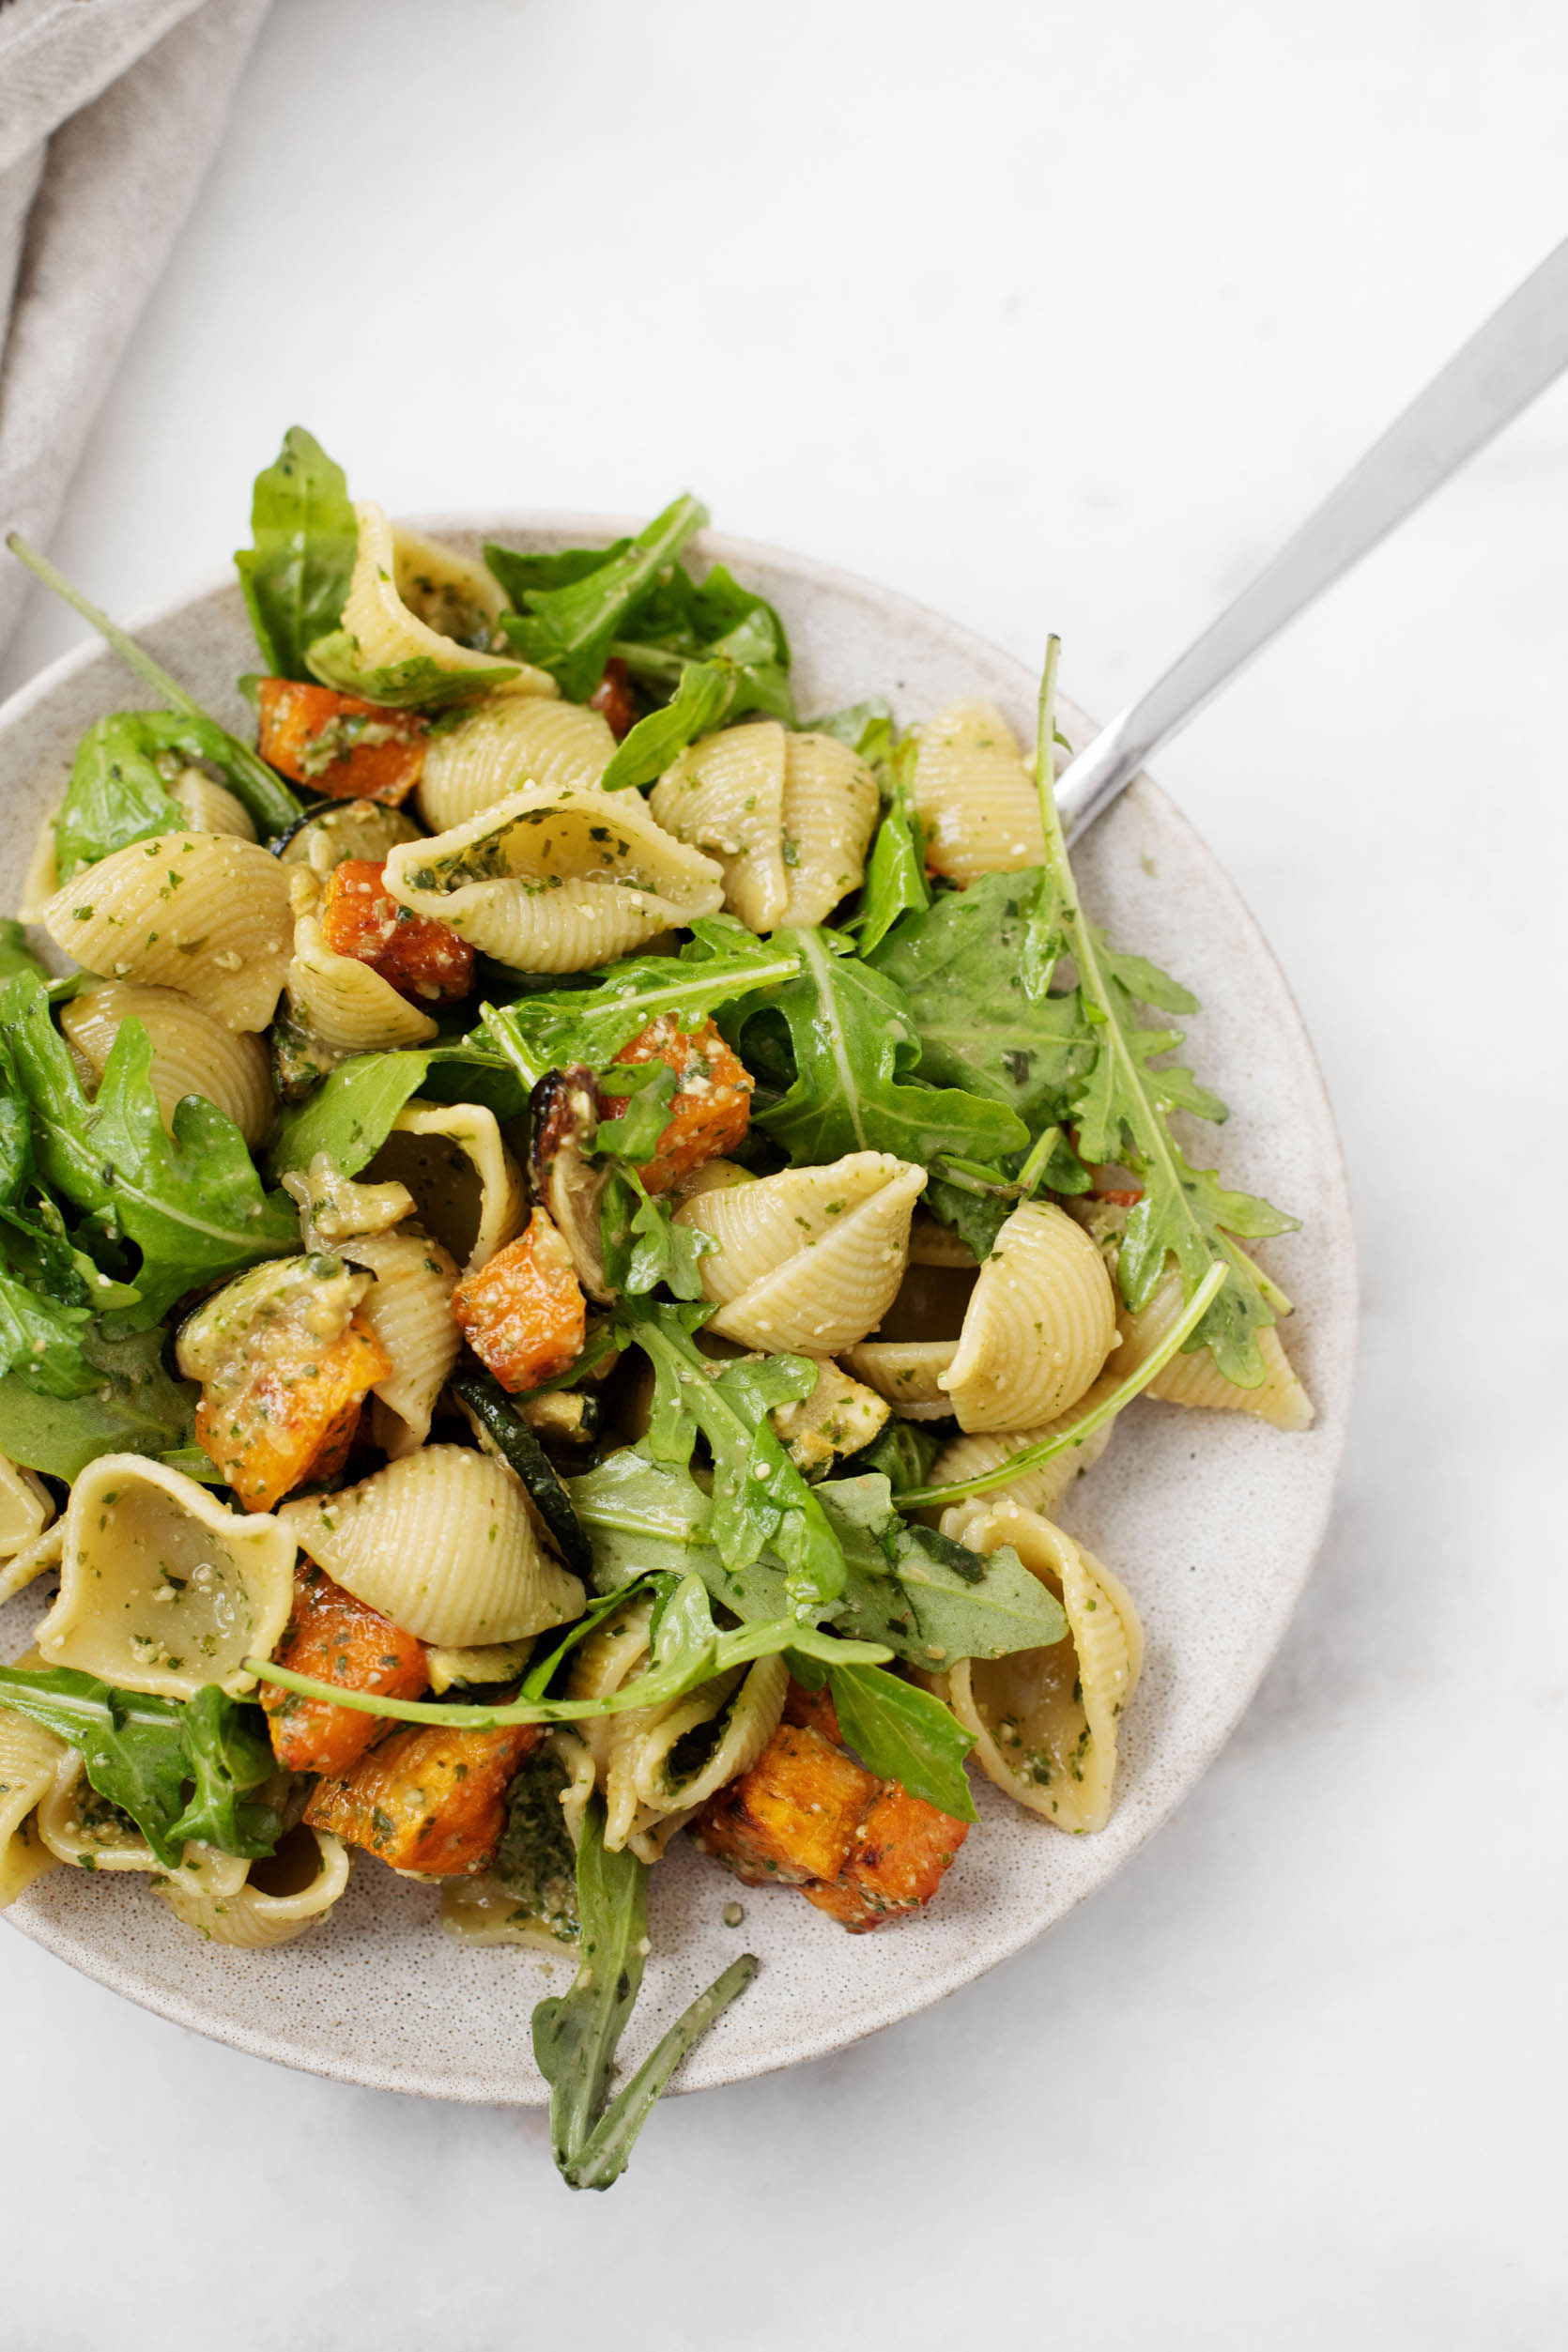 A zoomed in photograph of a plate of pasta shells made with roasted vegetables, arugula, and pesto sauce.